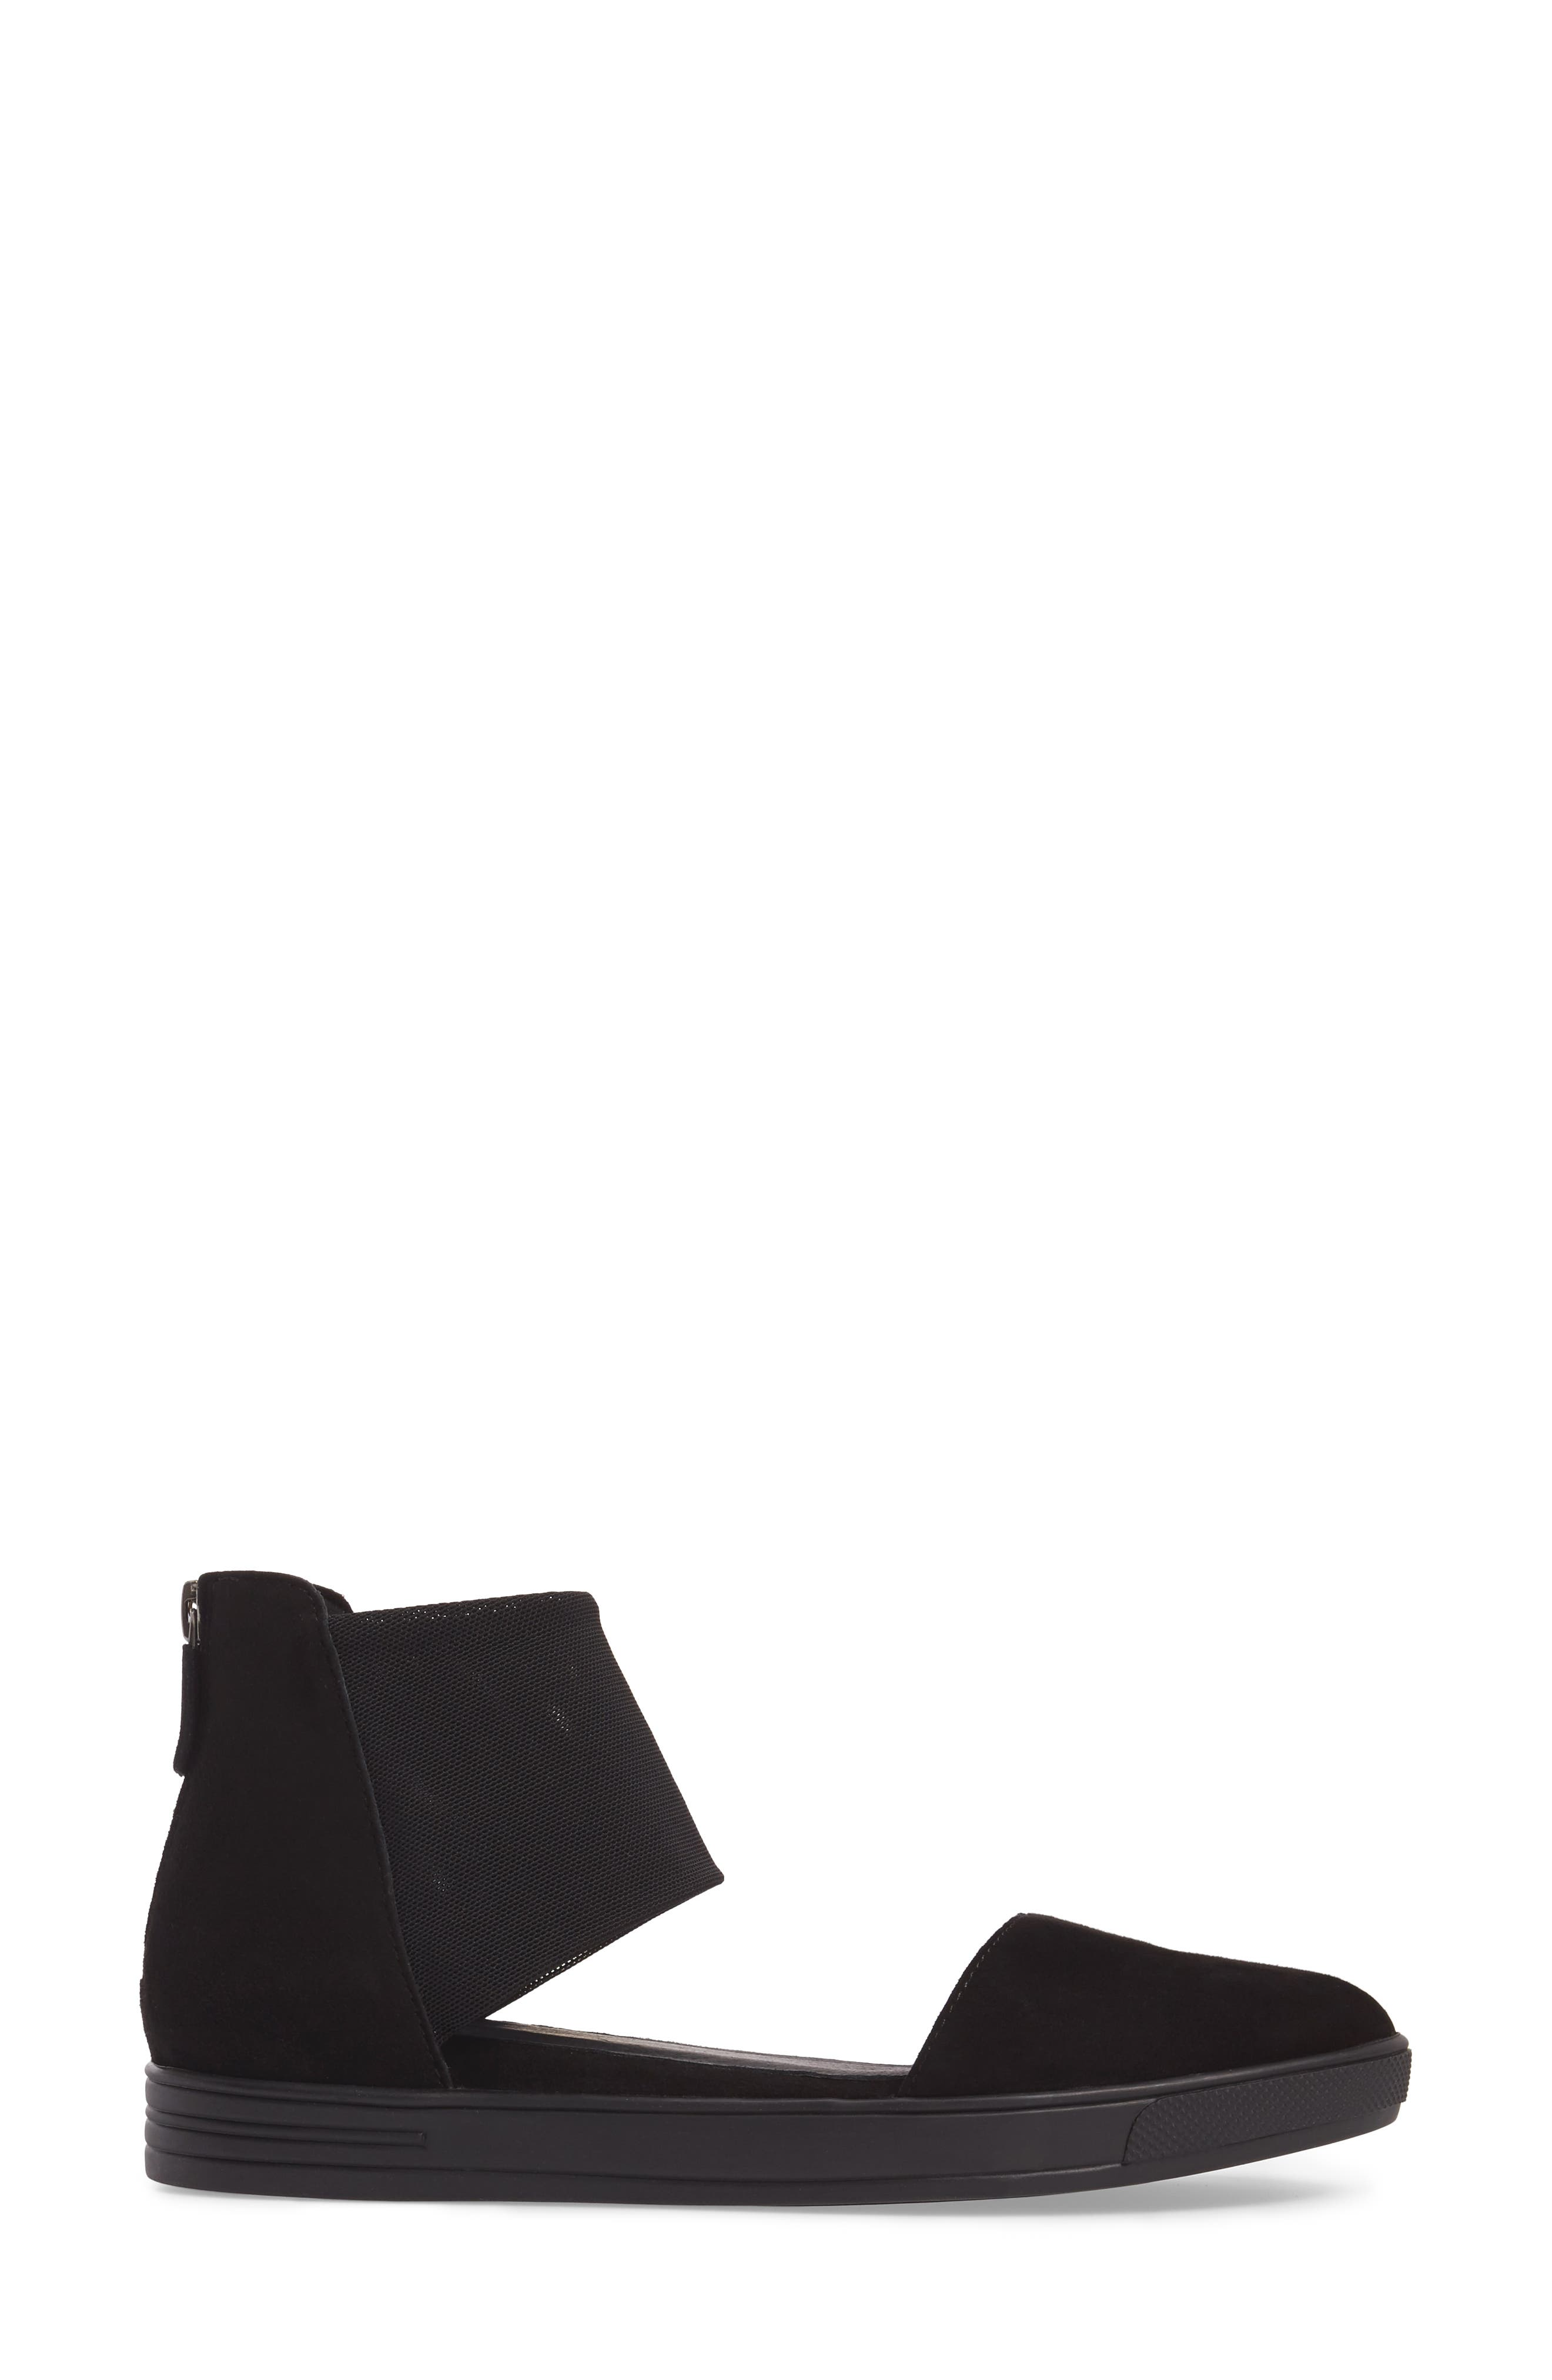 Powell Ankle Cuff Sandal,                             Alternate thumbnail 3, color,                             001